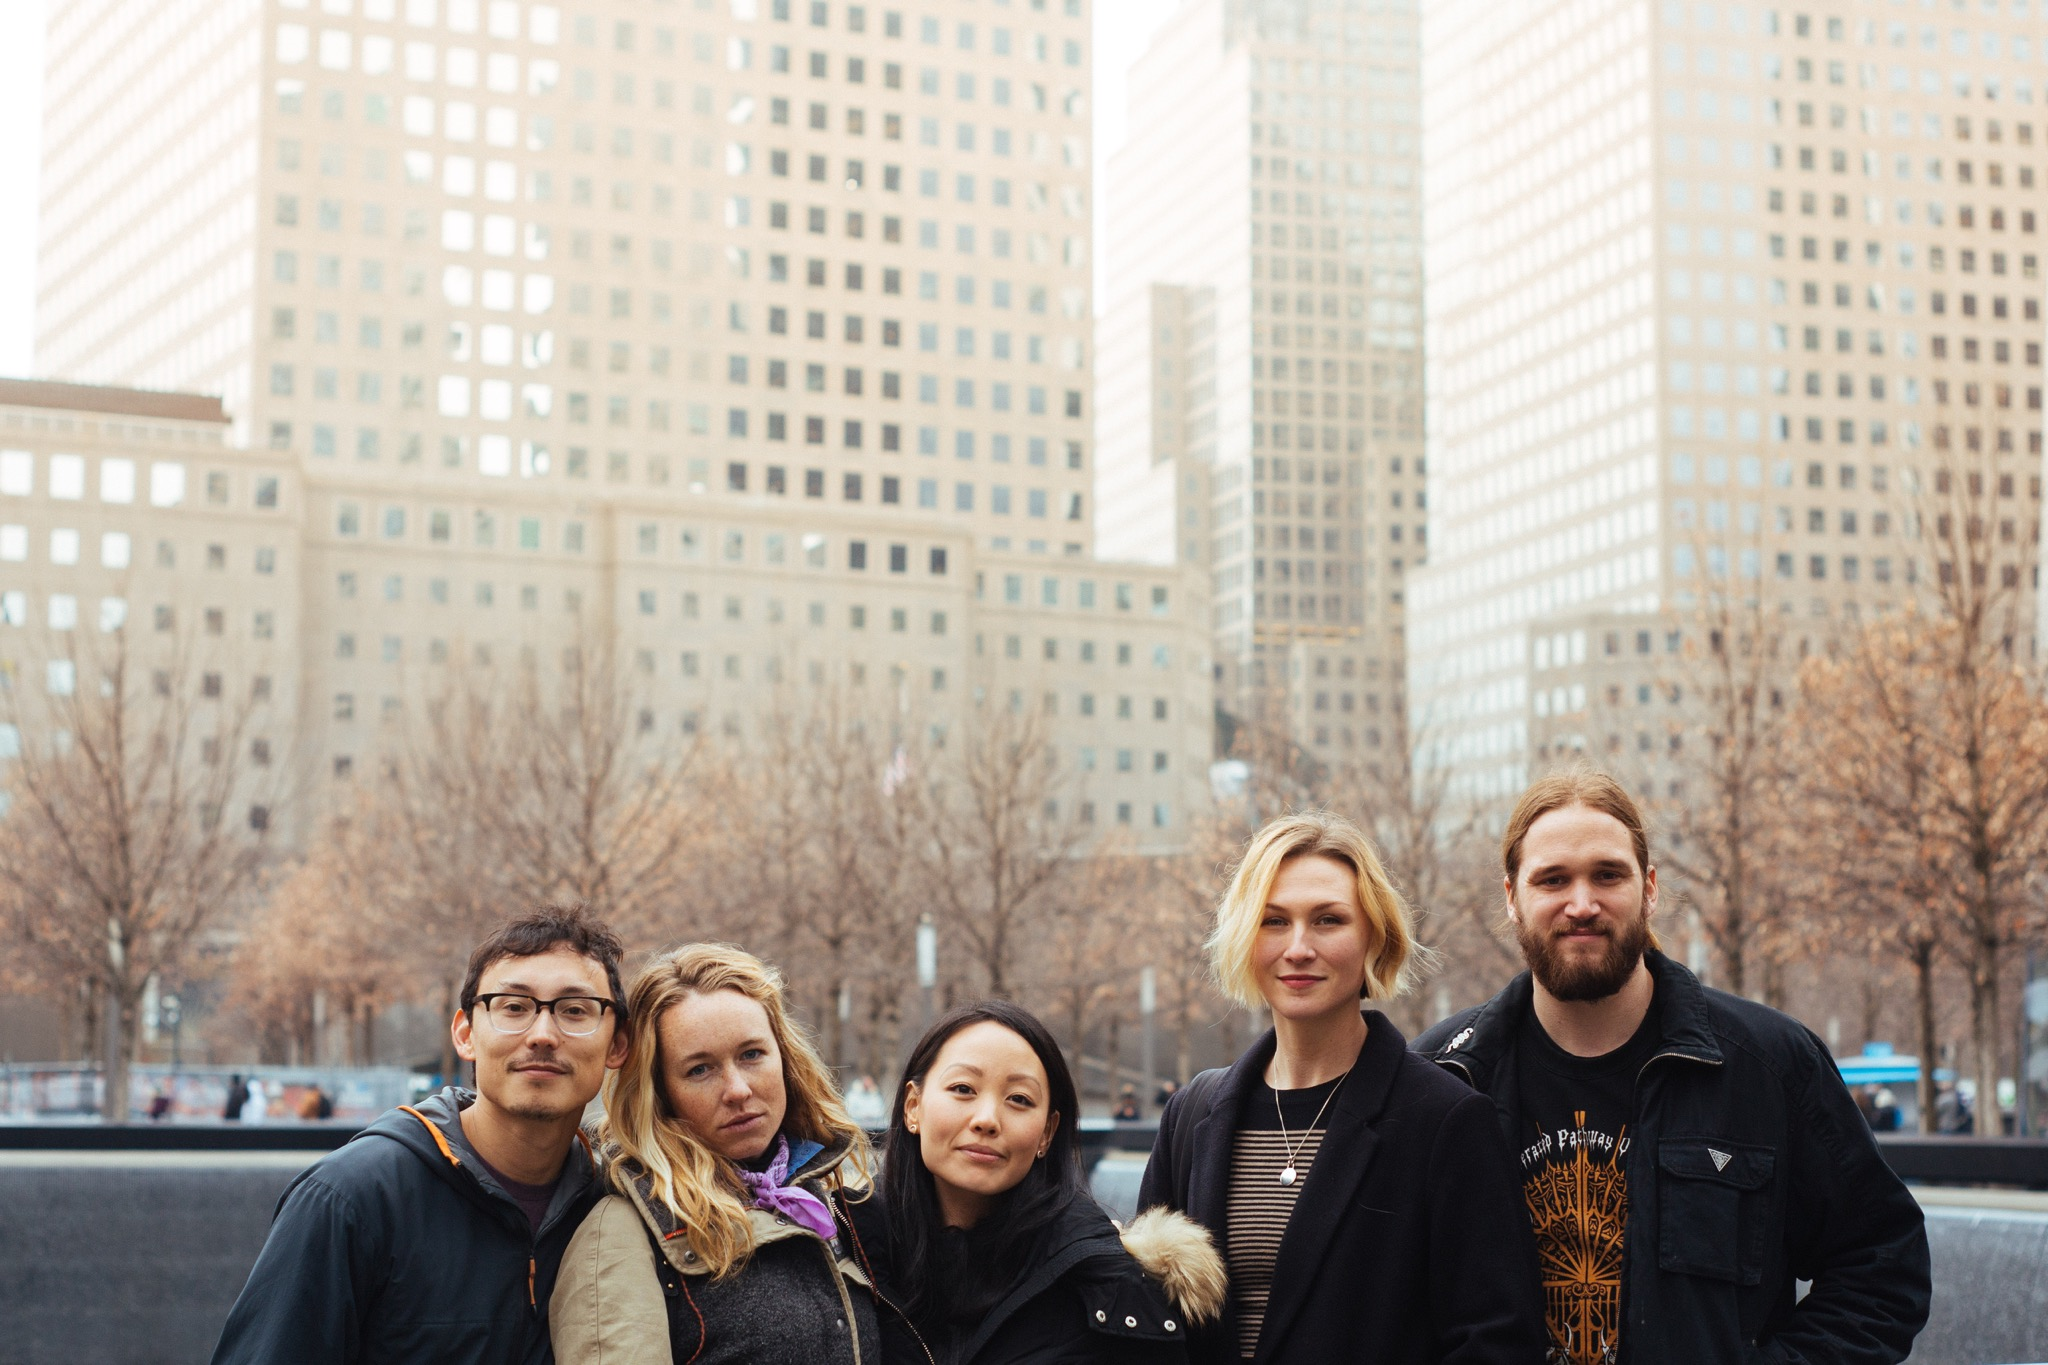 Owen, MAK, Morgan, Megan, and Mike in NYC